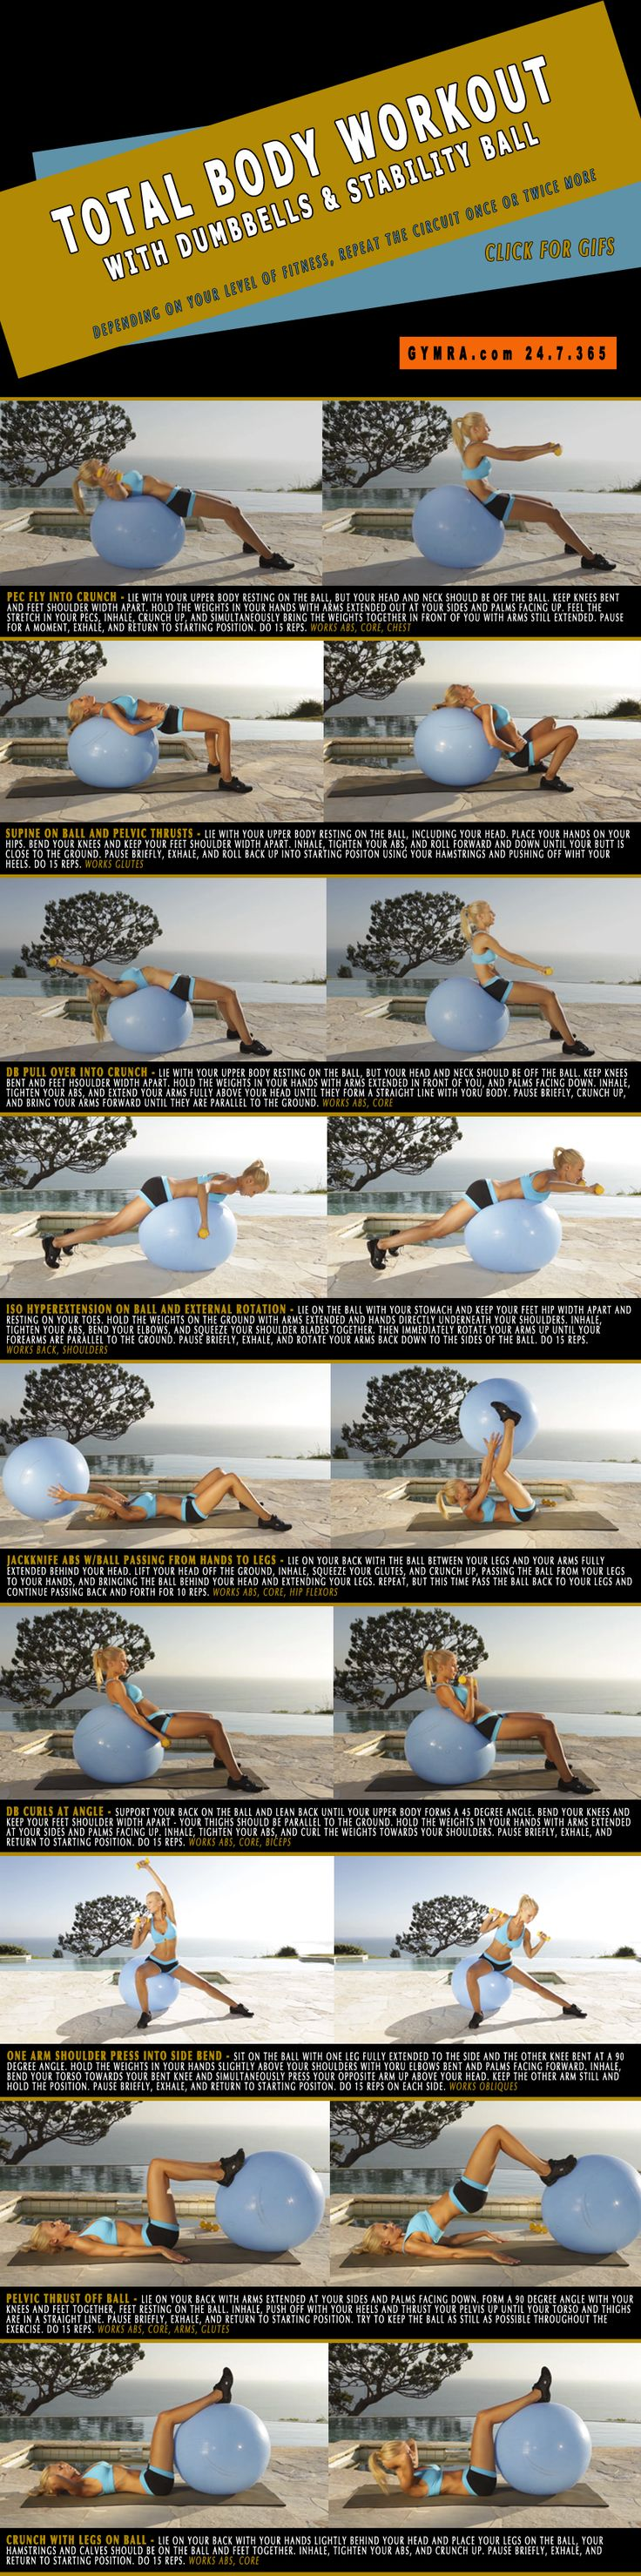 Full Body Workout with Dumbbells & a Stability Ball. A stability ball engages all your #muscles and builds strength while improving stability. There aren't many other #fitness tools that work your entire body better than an #exercise ball will! Add #dumbbells into the mix and you'll be feeling the burn majorly! This head to toe toning routine will get you into excellent shape and feeling great! Click on the image to see the moves in GIF form. #weightloss #workout #abs #health